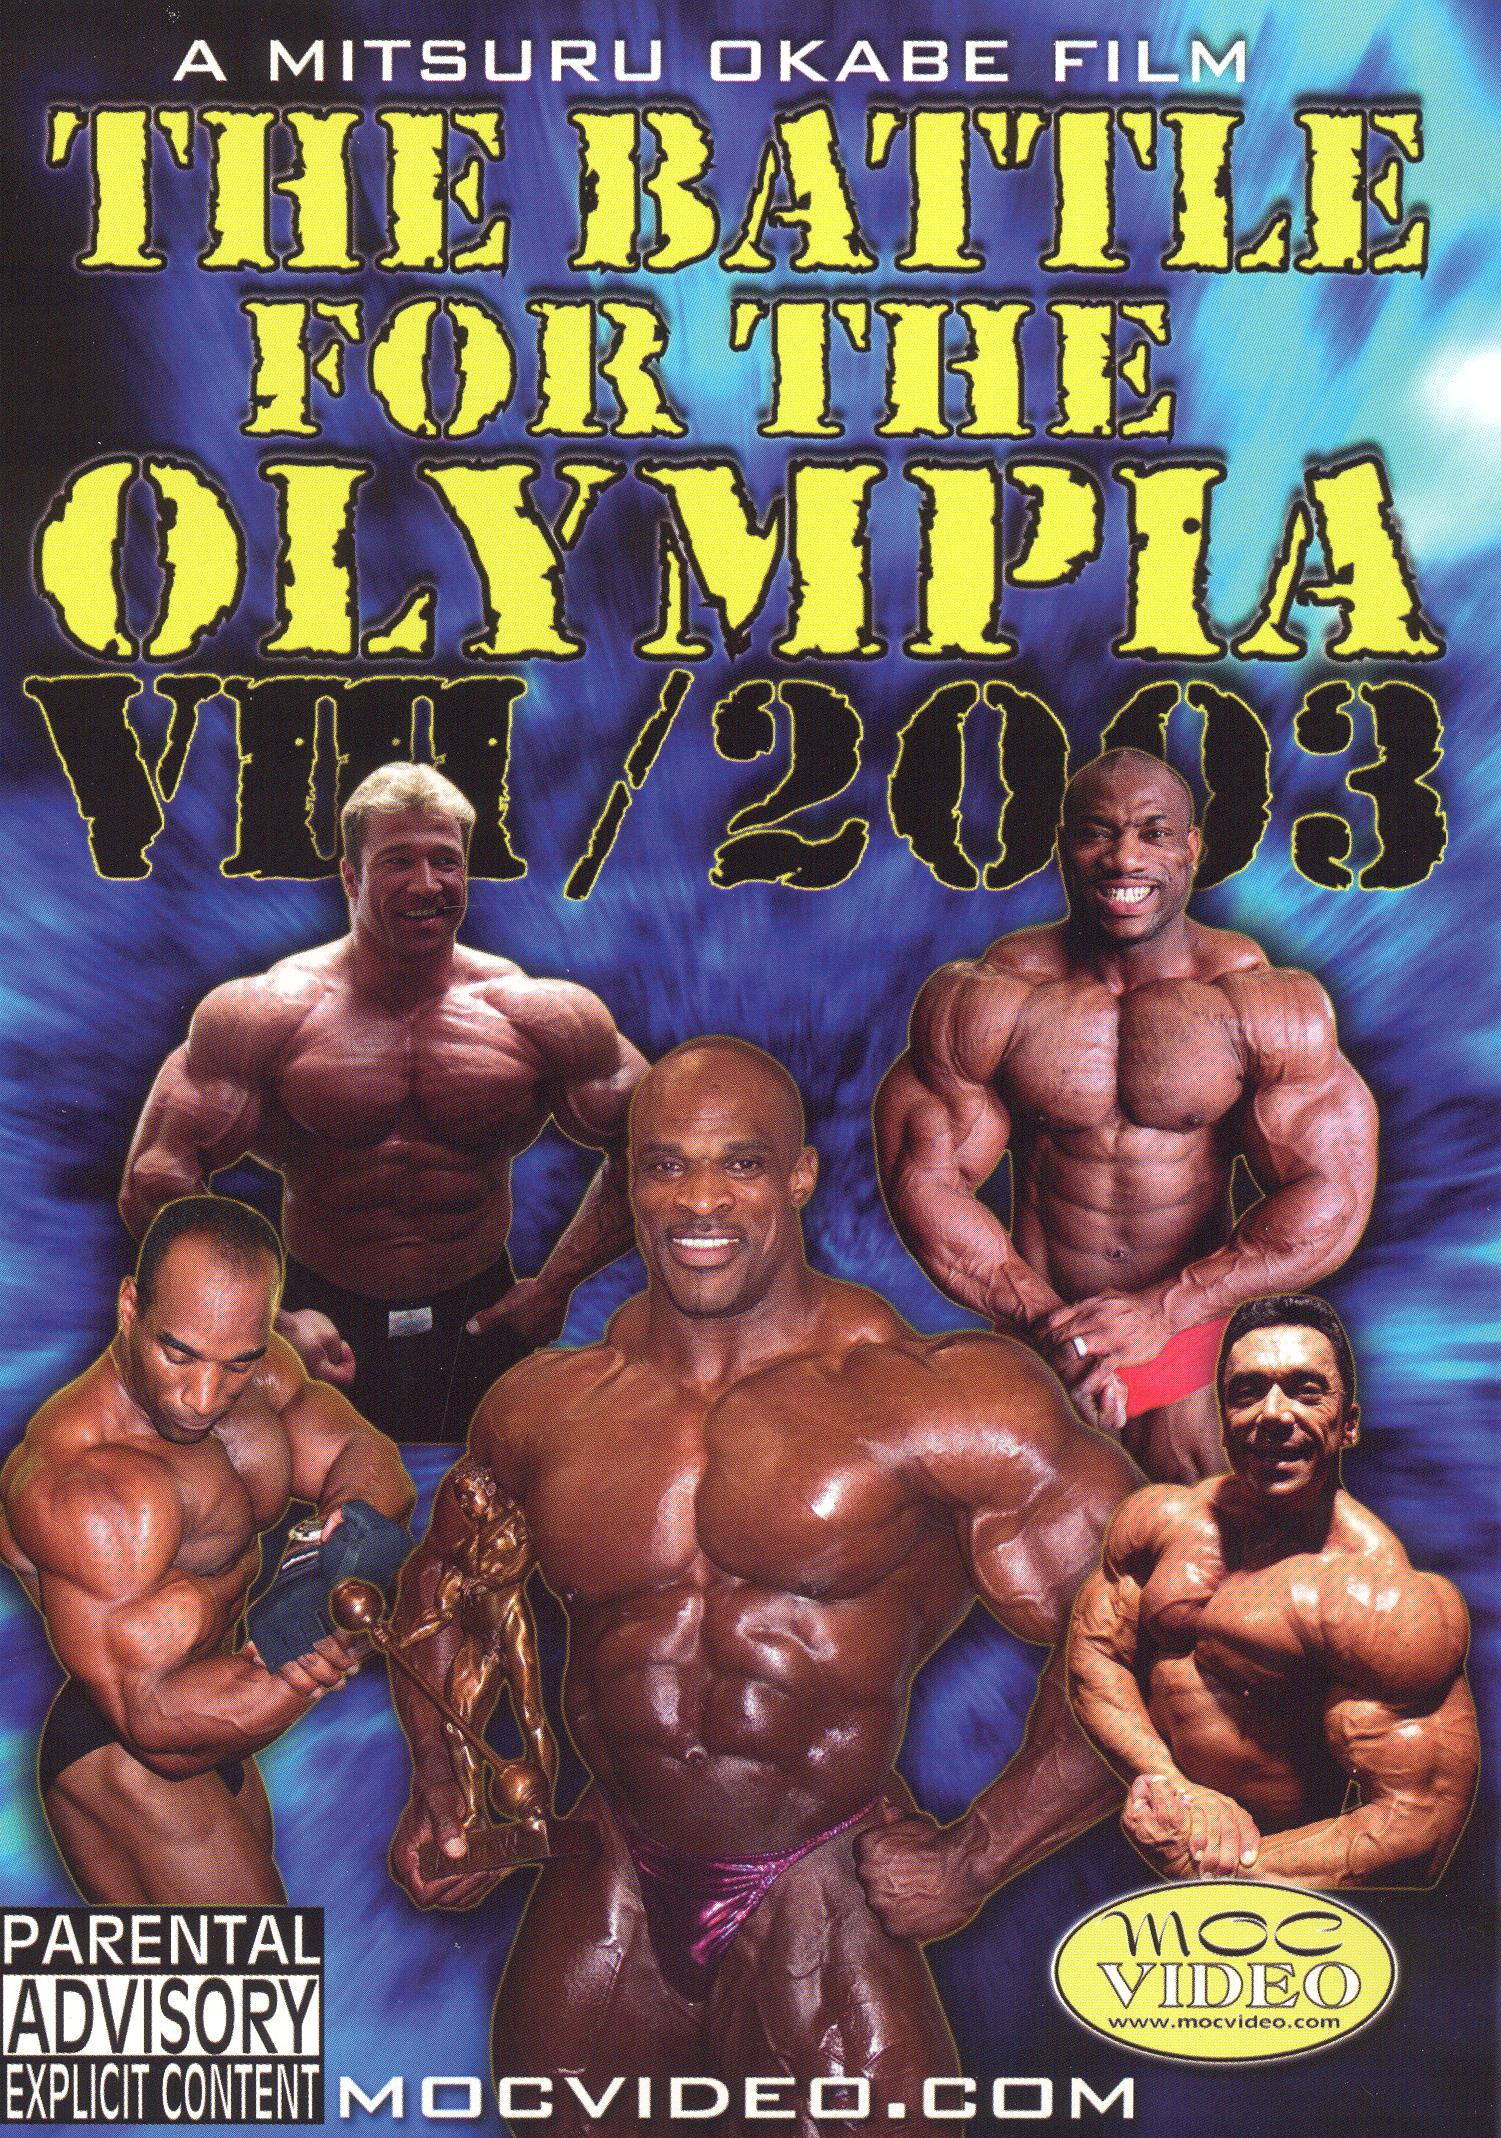 The Battle for the Olympia, Vol. VIII - 2003